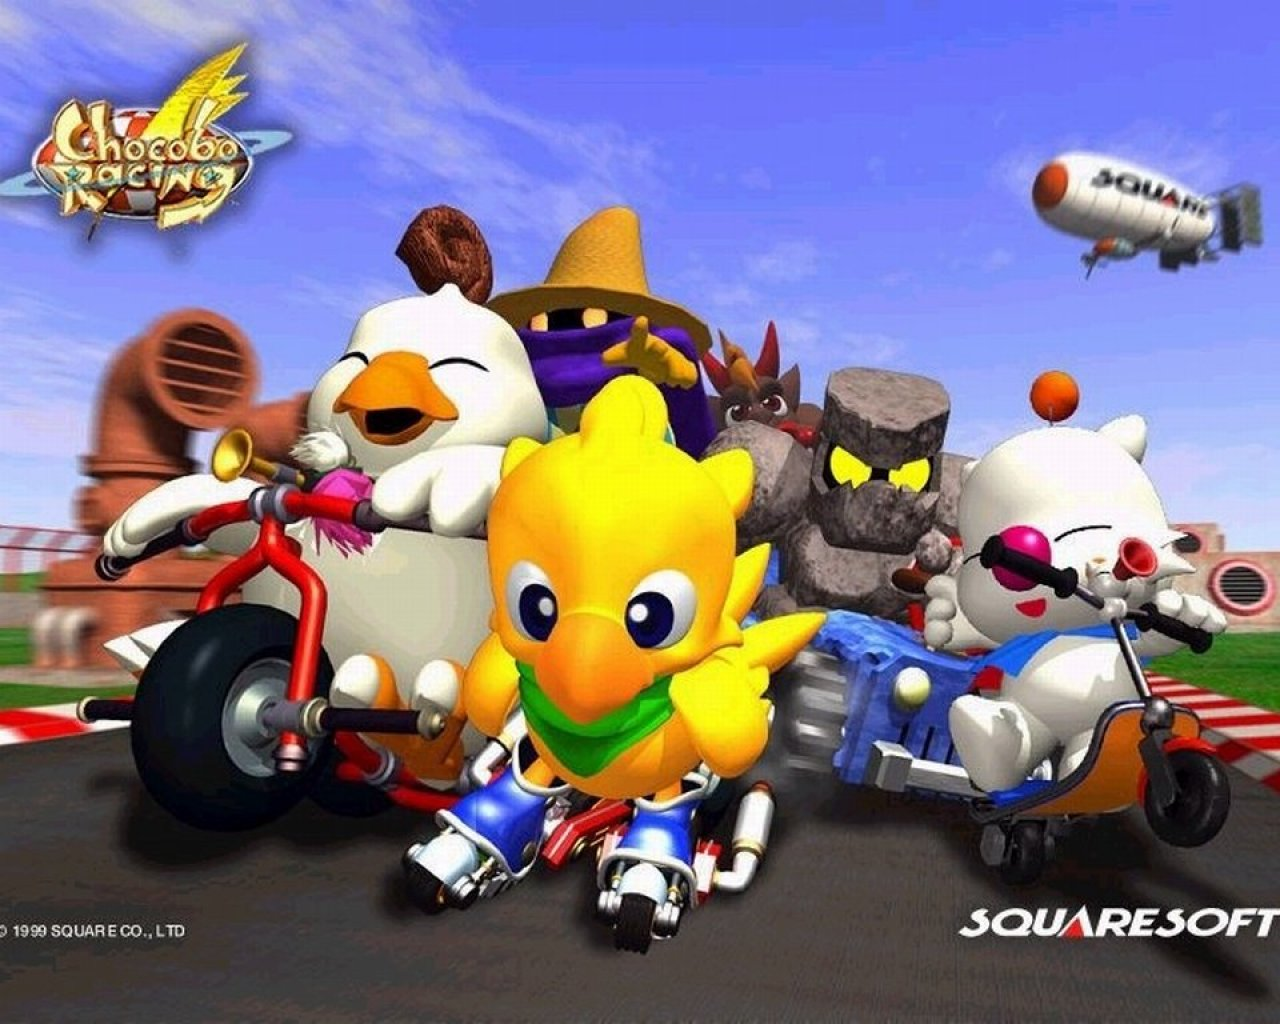 Chocobo Racing Wallpapers - Download Chocobo Racing